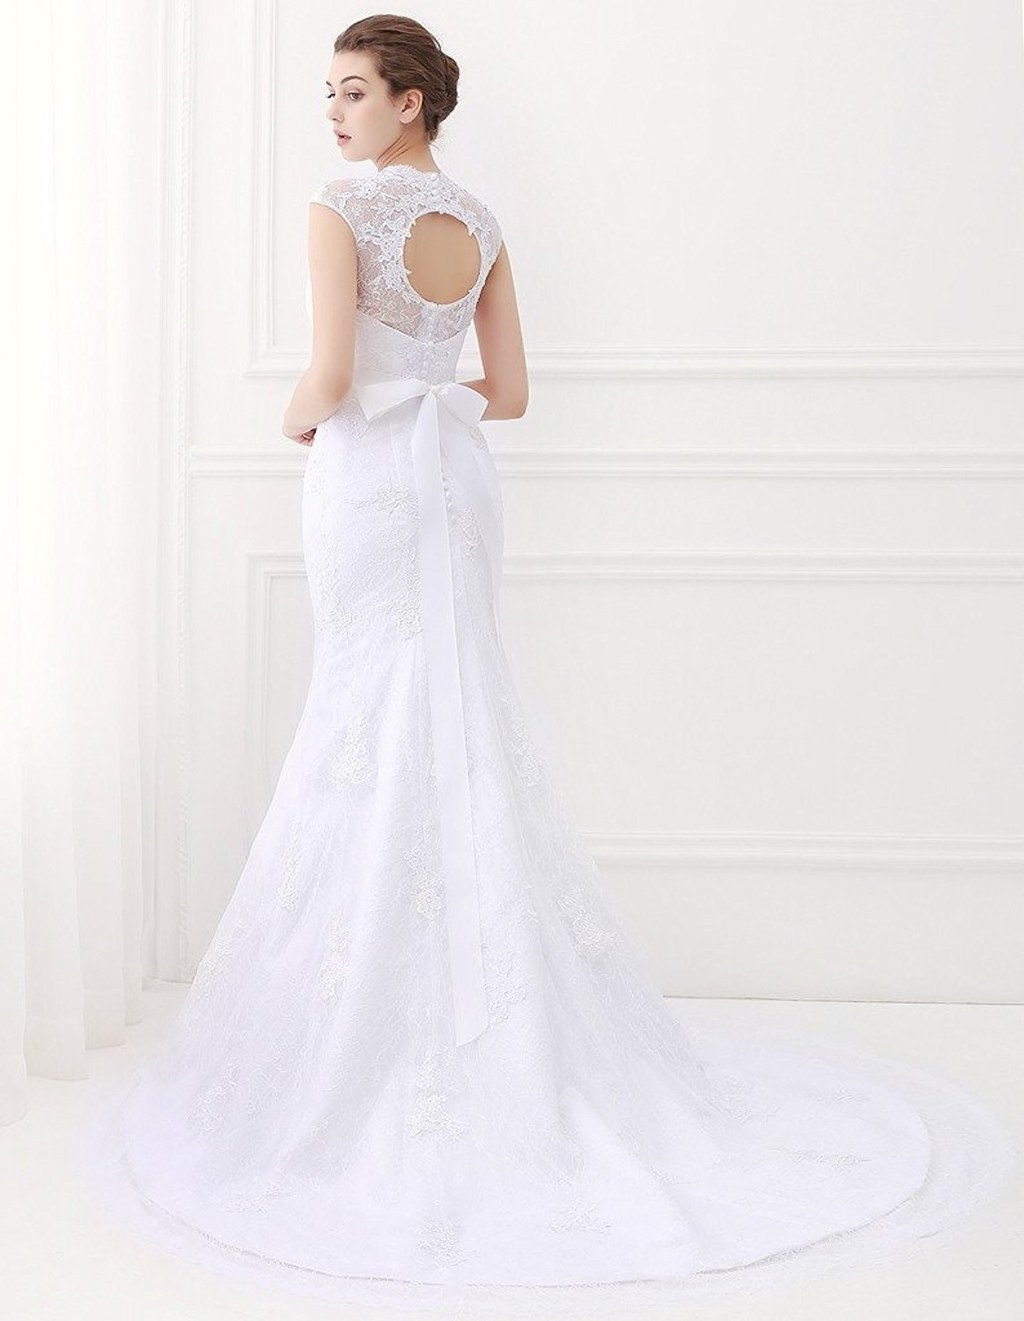 A Bridal Gown With A Bow In The Back, Because Your Undying Love Is The  Greatest Gift Of All. Amirite?